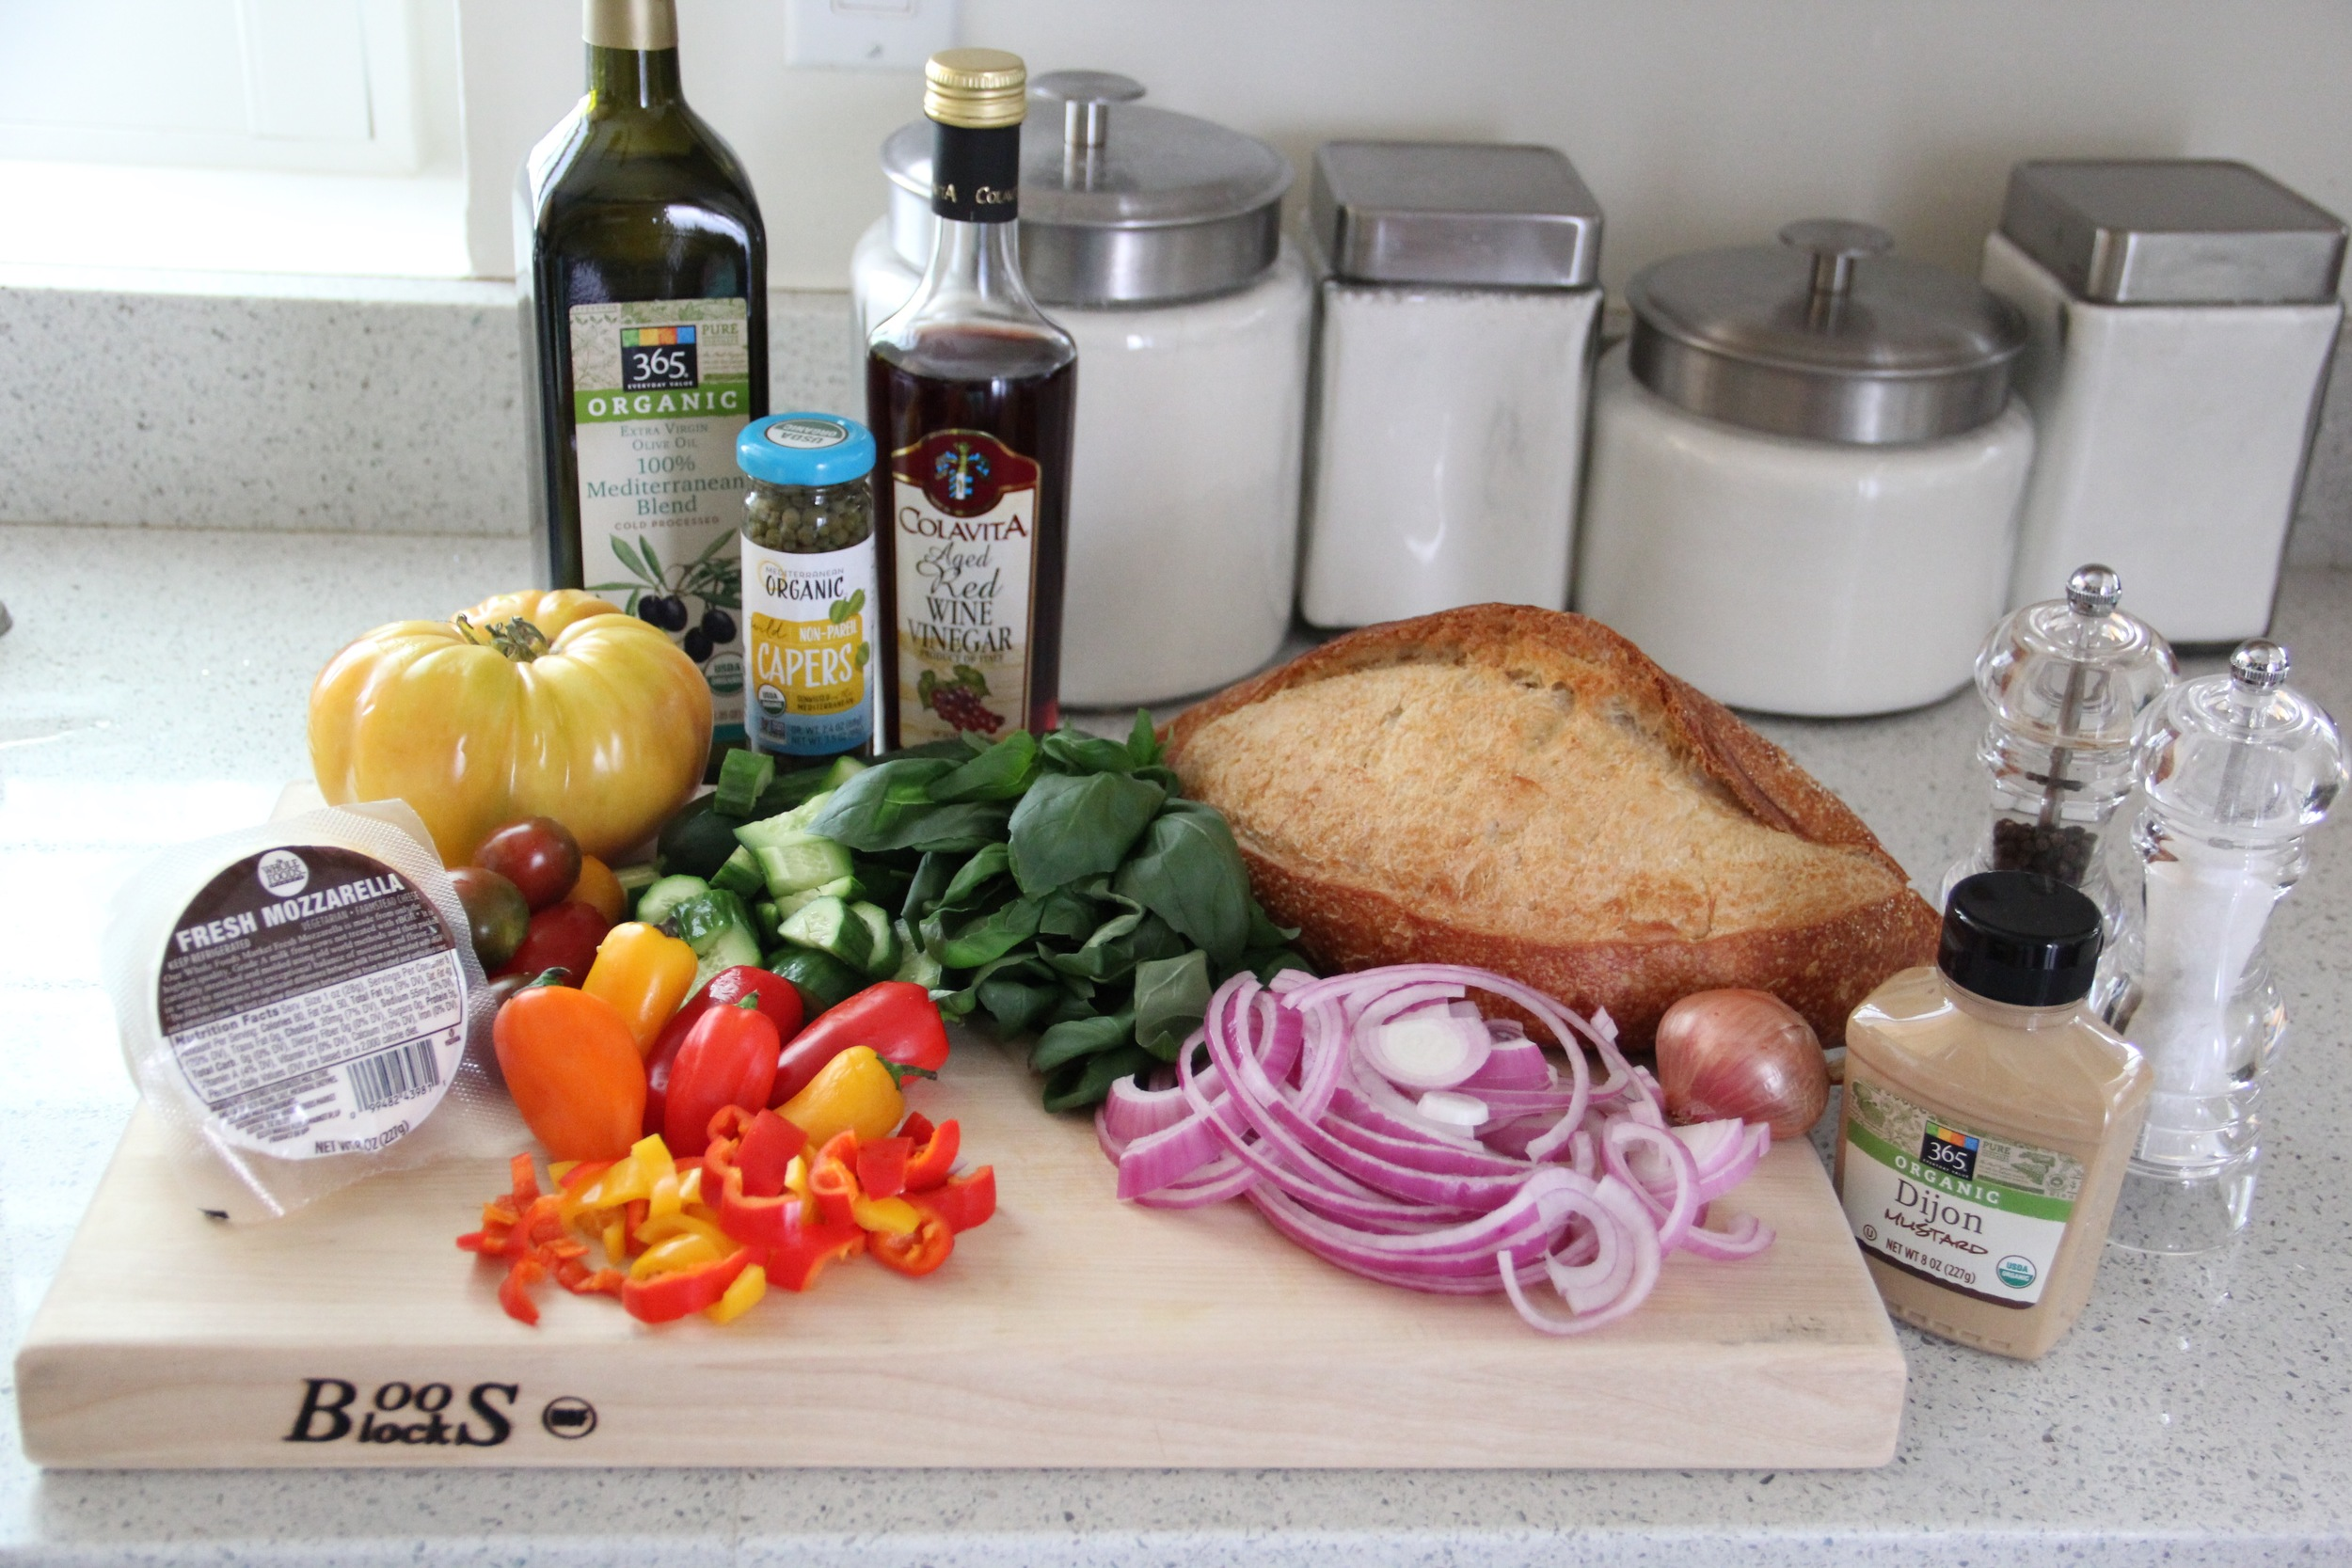 Panzanella Salad Ingredients.jpg